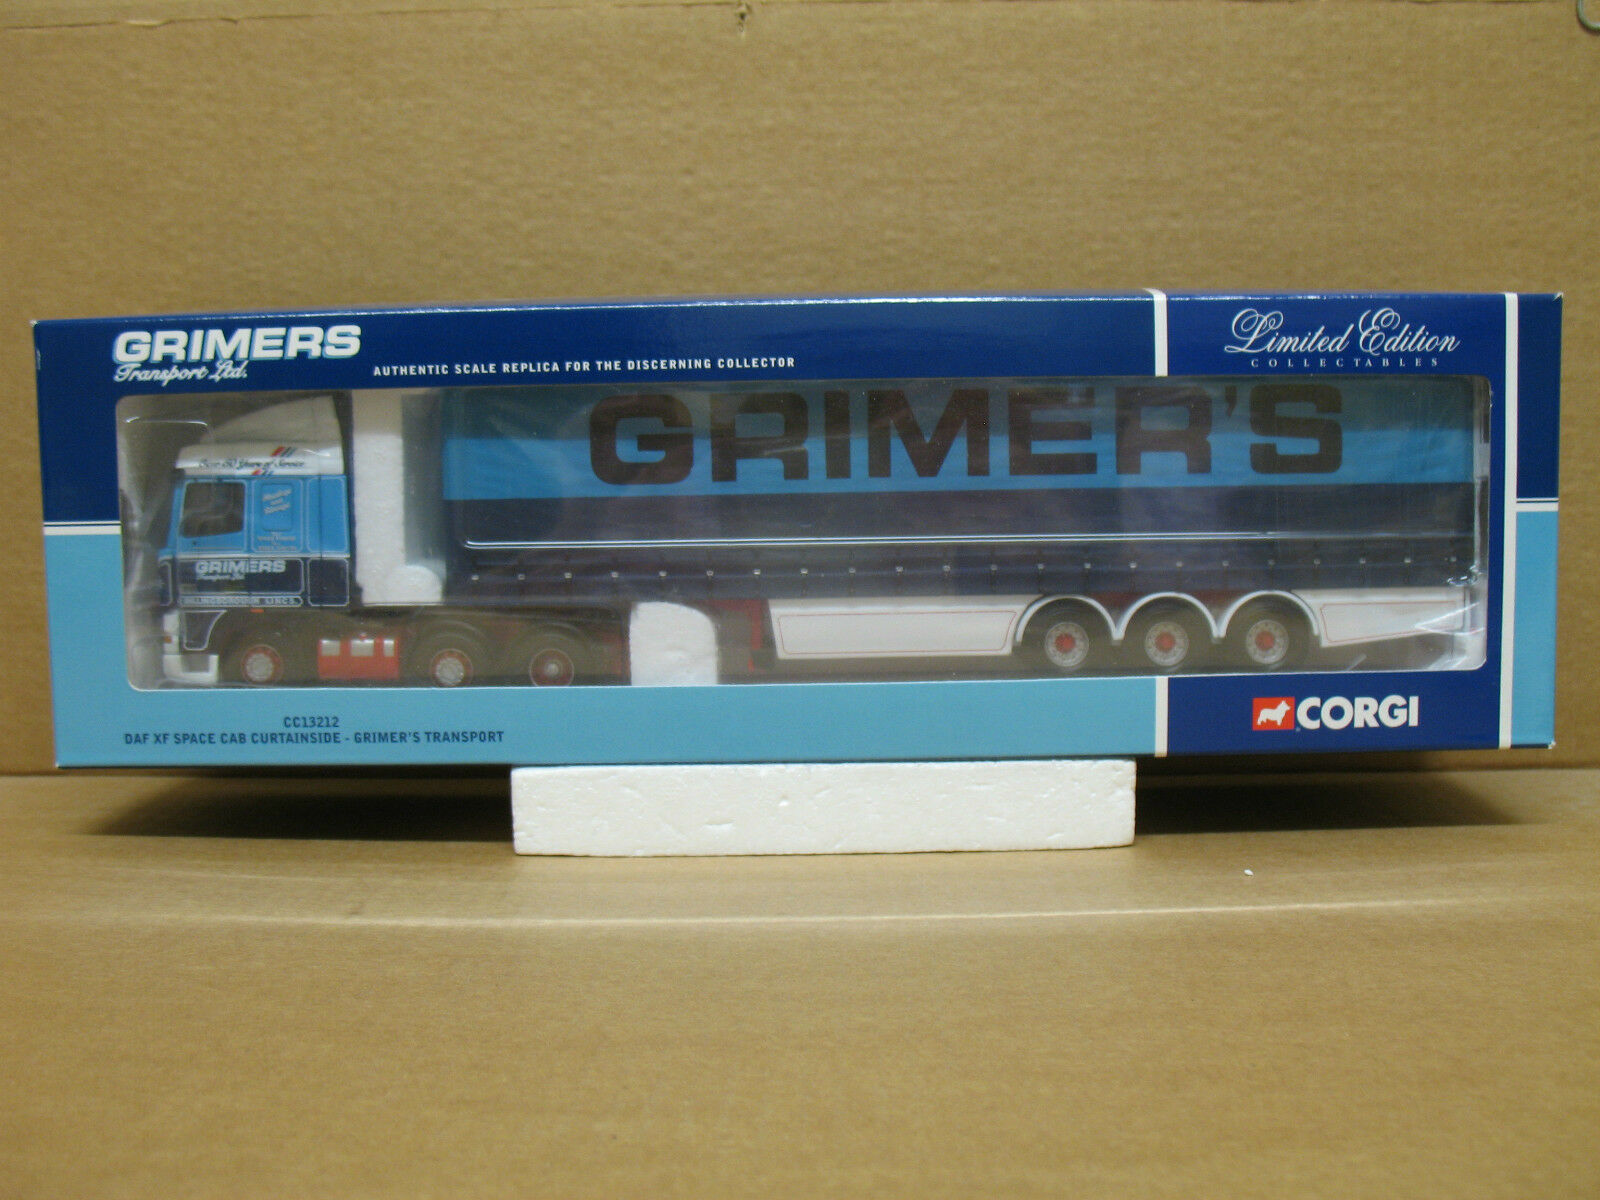 Corgi 1 50 scale CC13212 - DAF XF Space Cab Curtainside - GRIMER'S TRANSPORT